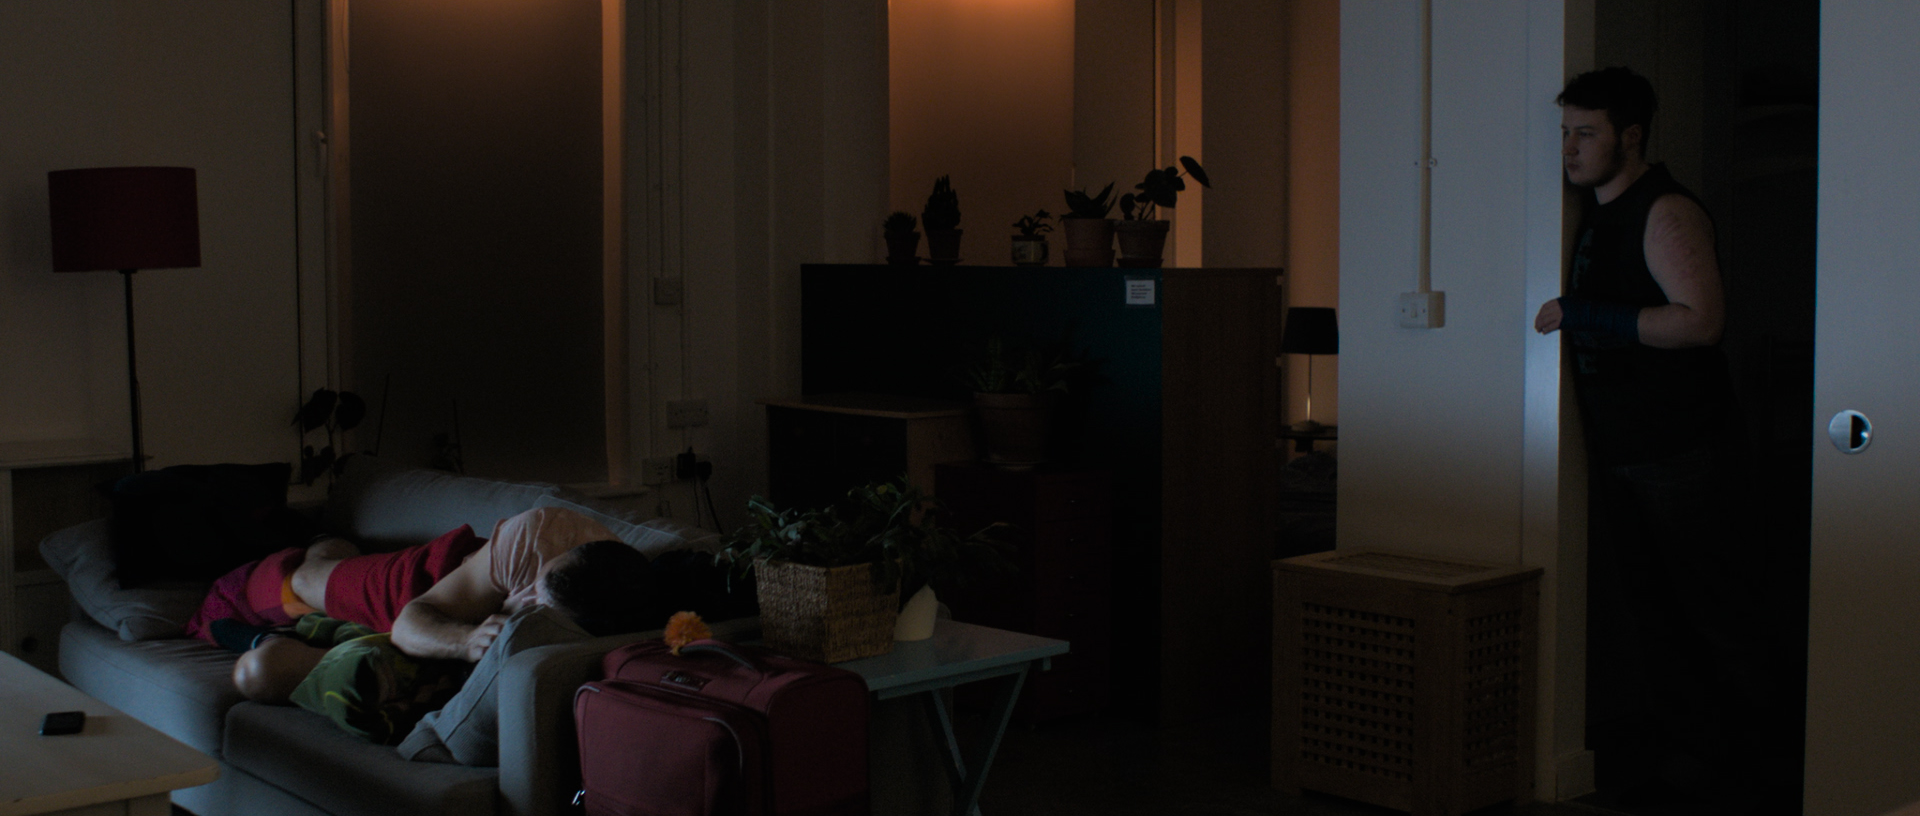 Orin looks over the sofa to see Anto sleeping by the light of the telly